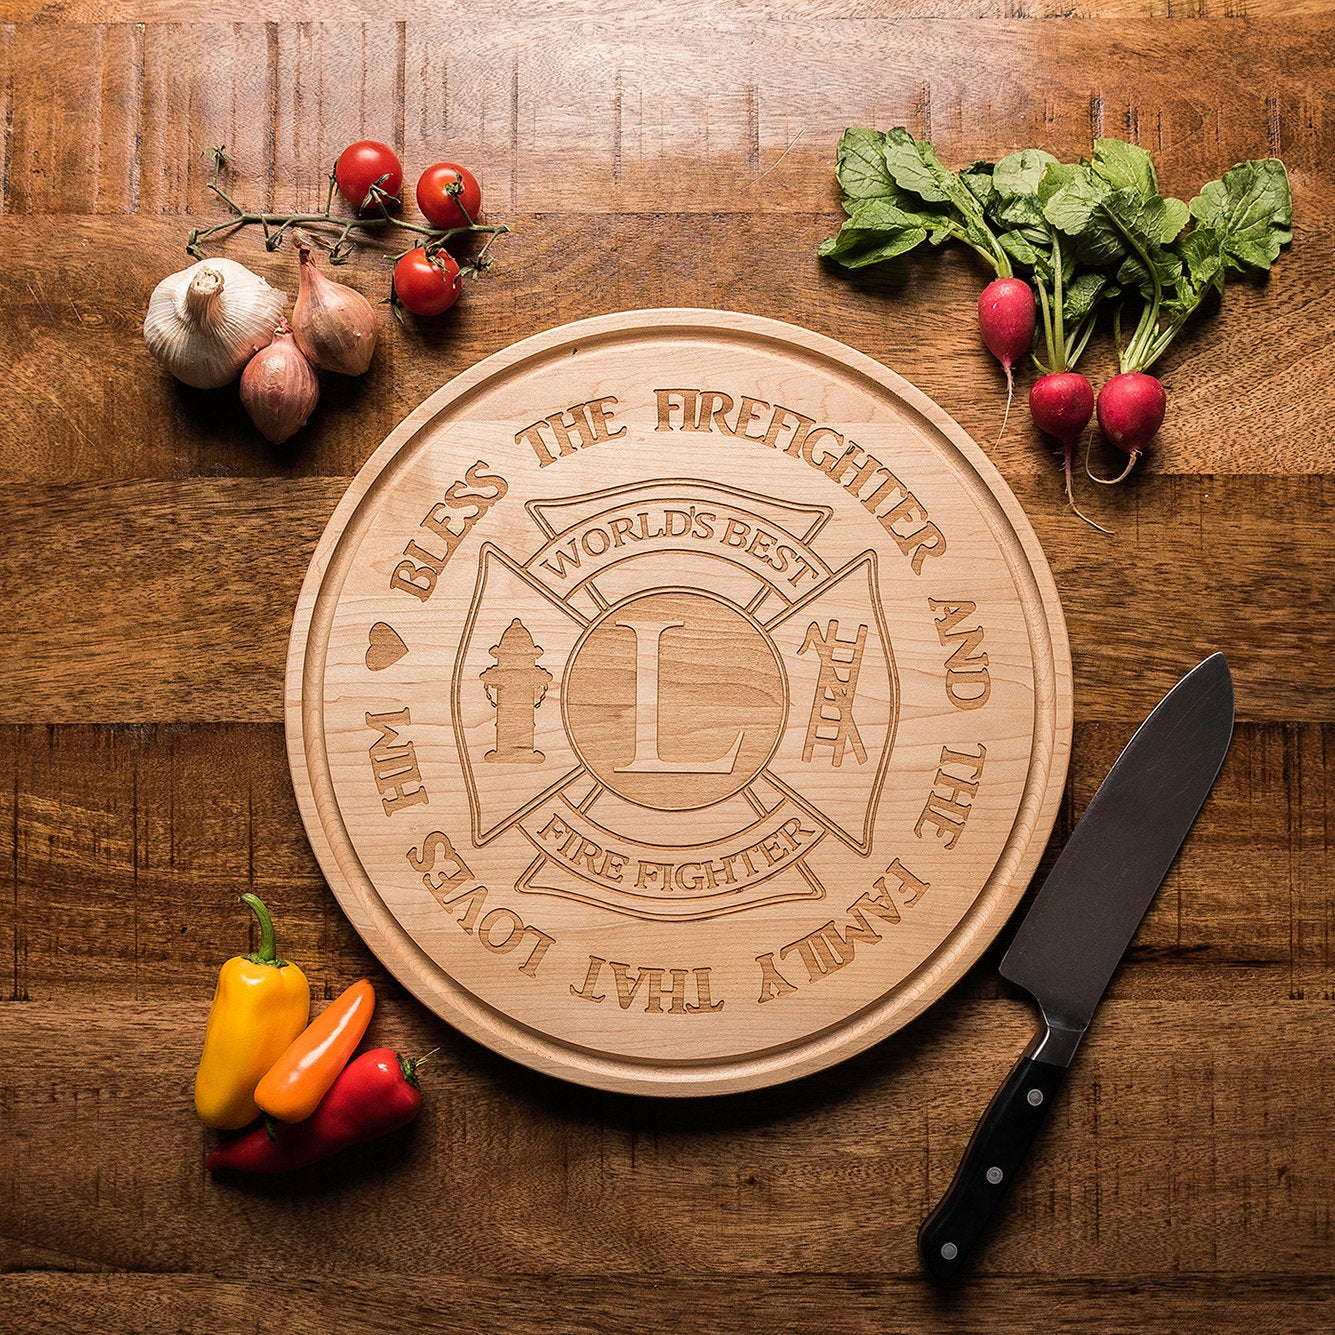 Award Engraved Cutting Board Corporate Gift Monogrammed Cutting Board Couple Wedding Personalized Cutting Board Custom Cutting Board